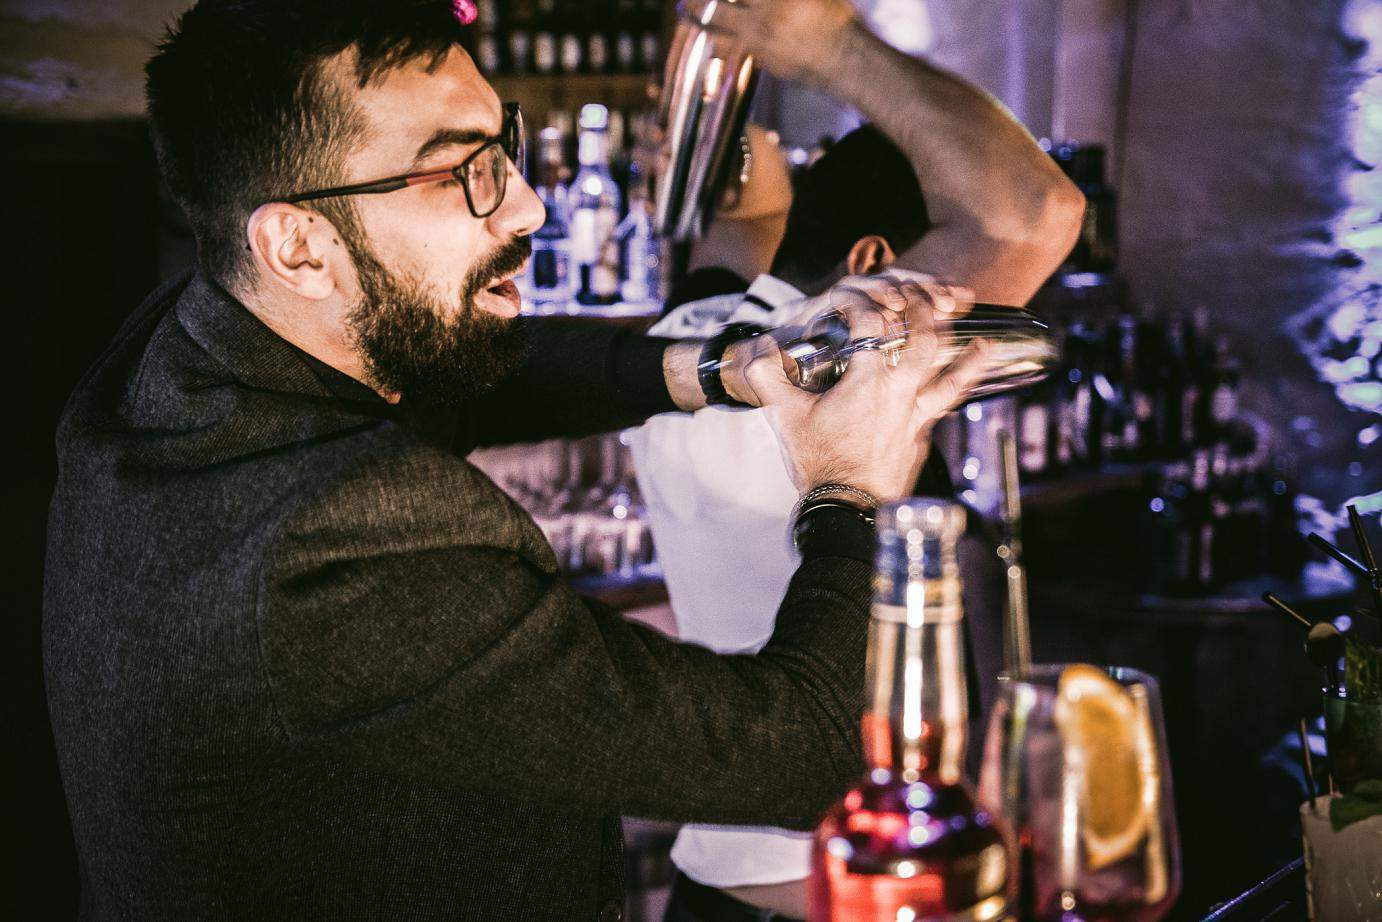 Cocktail Shaker in action